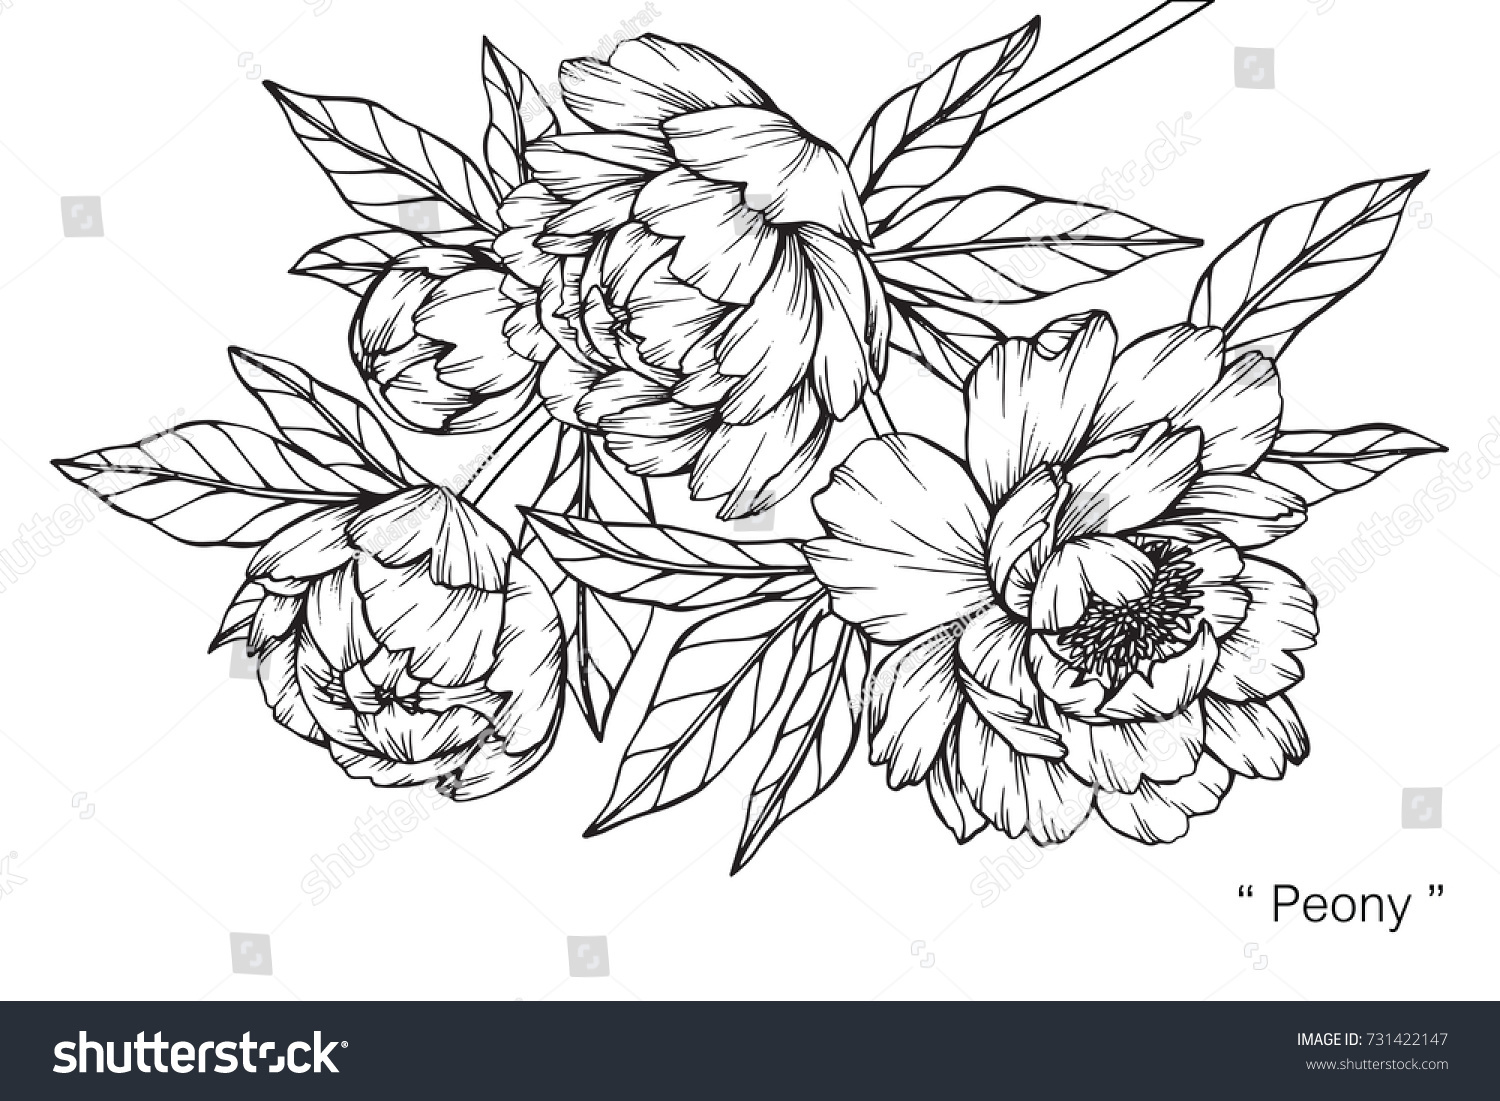 Peony Flower Line Drawing : Hand drawing sketch peony flower black stock vector